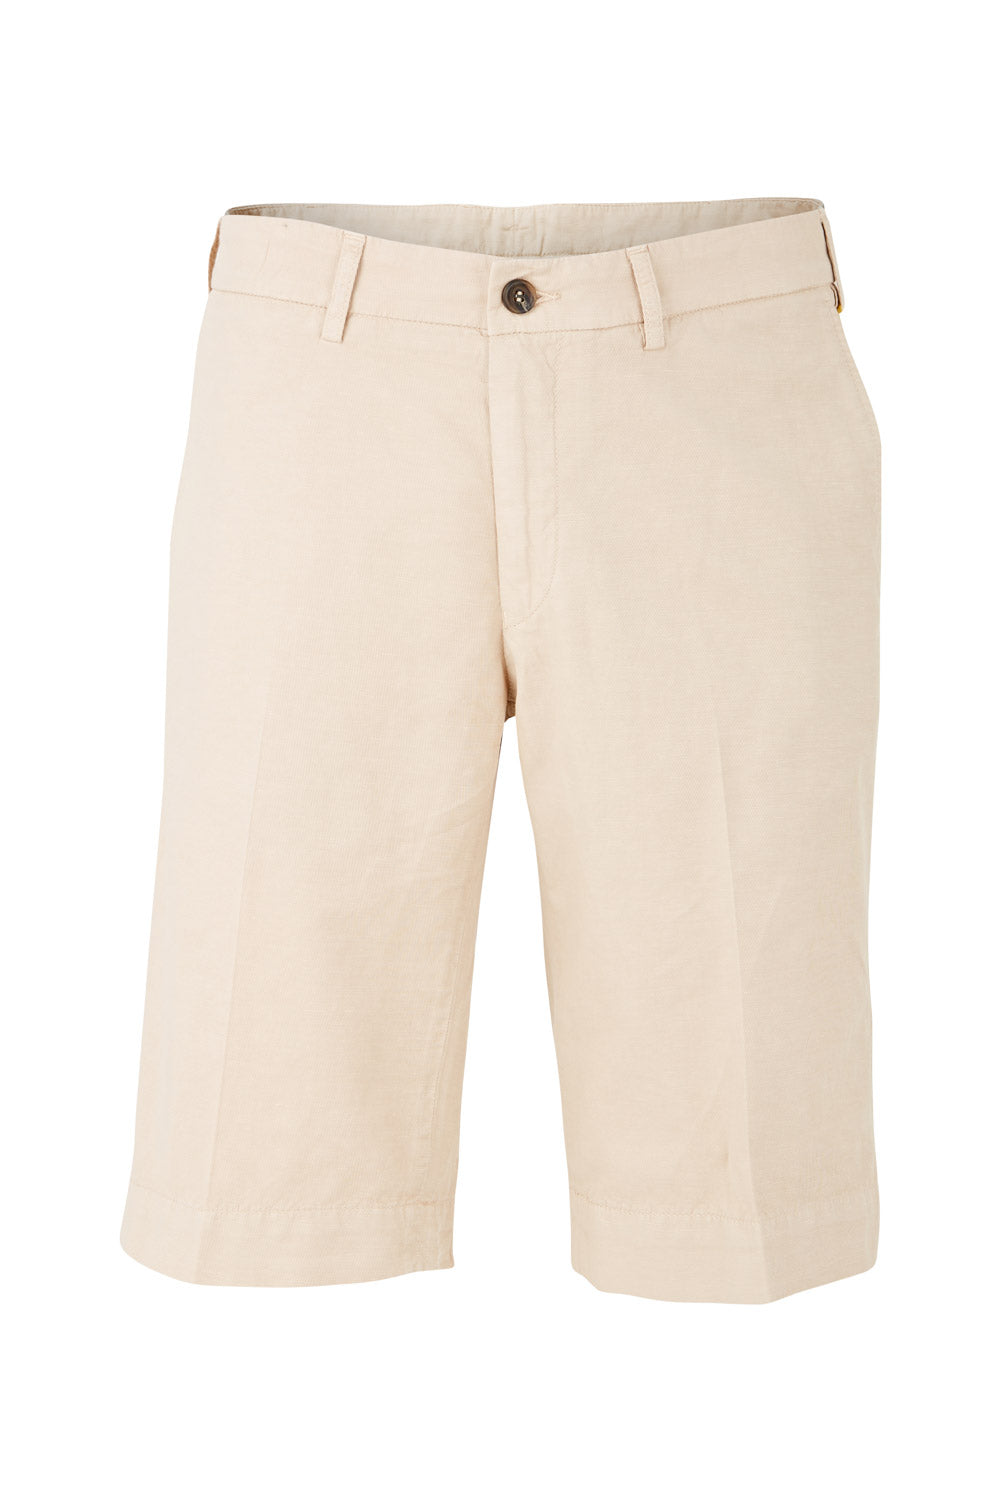 Canali Cotton & Linen Chino Shorts (Beige)